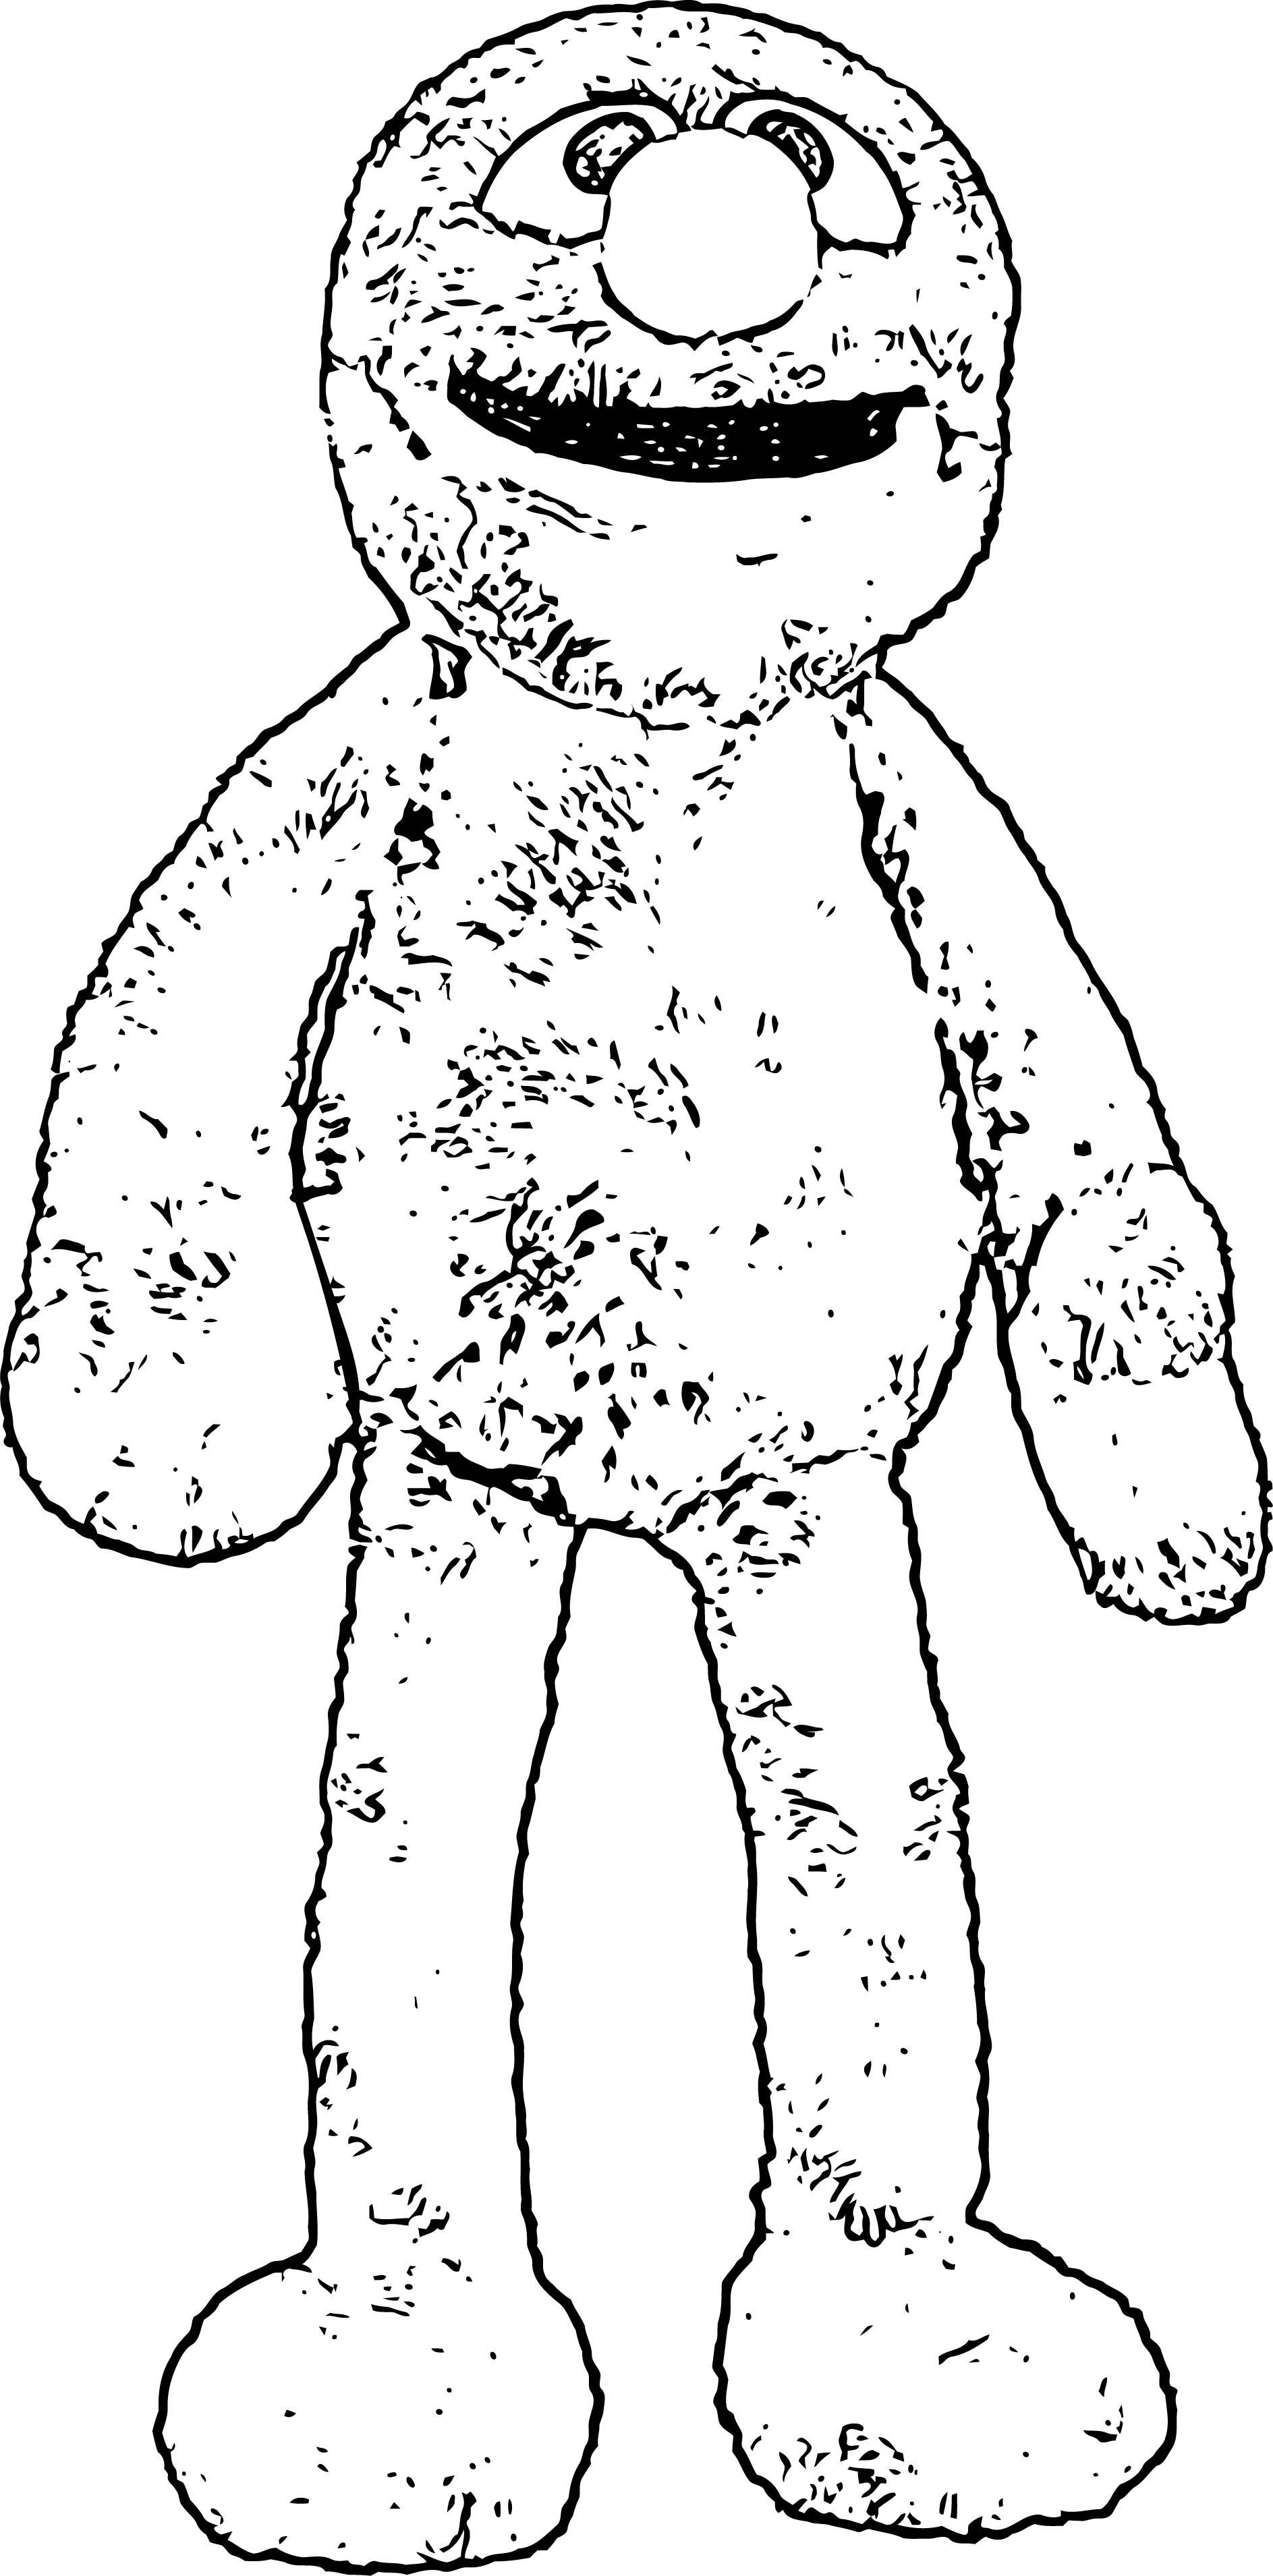 Grover Sesame Street Coloring Page